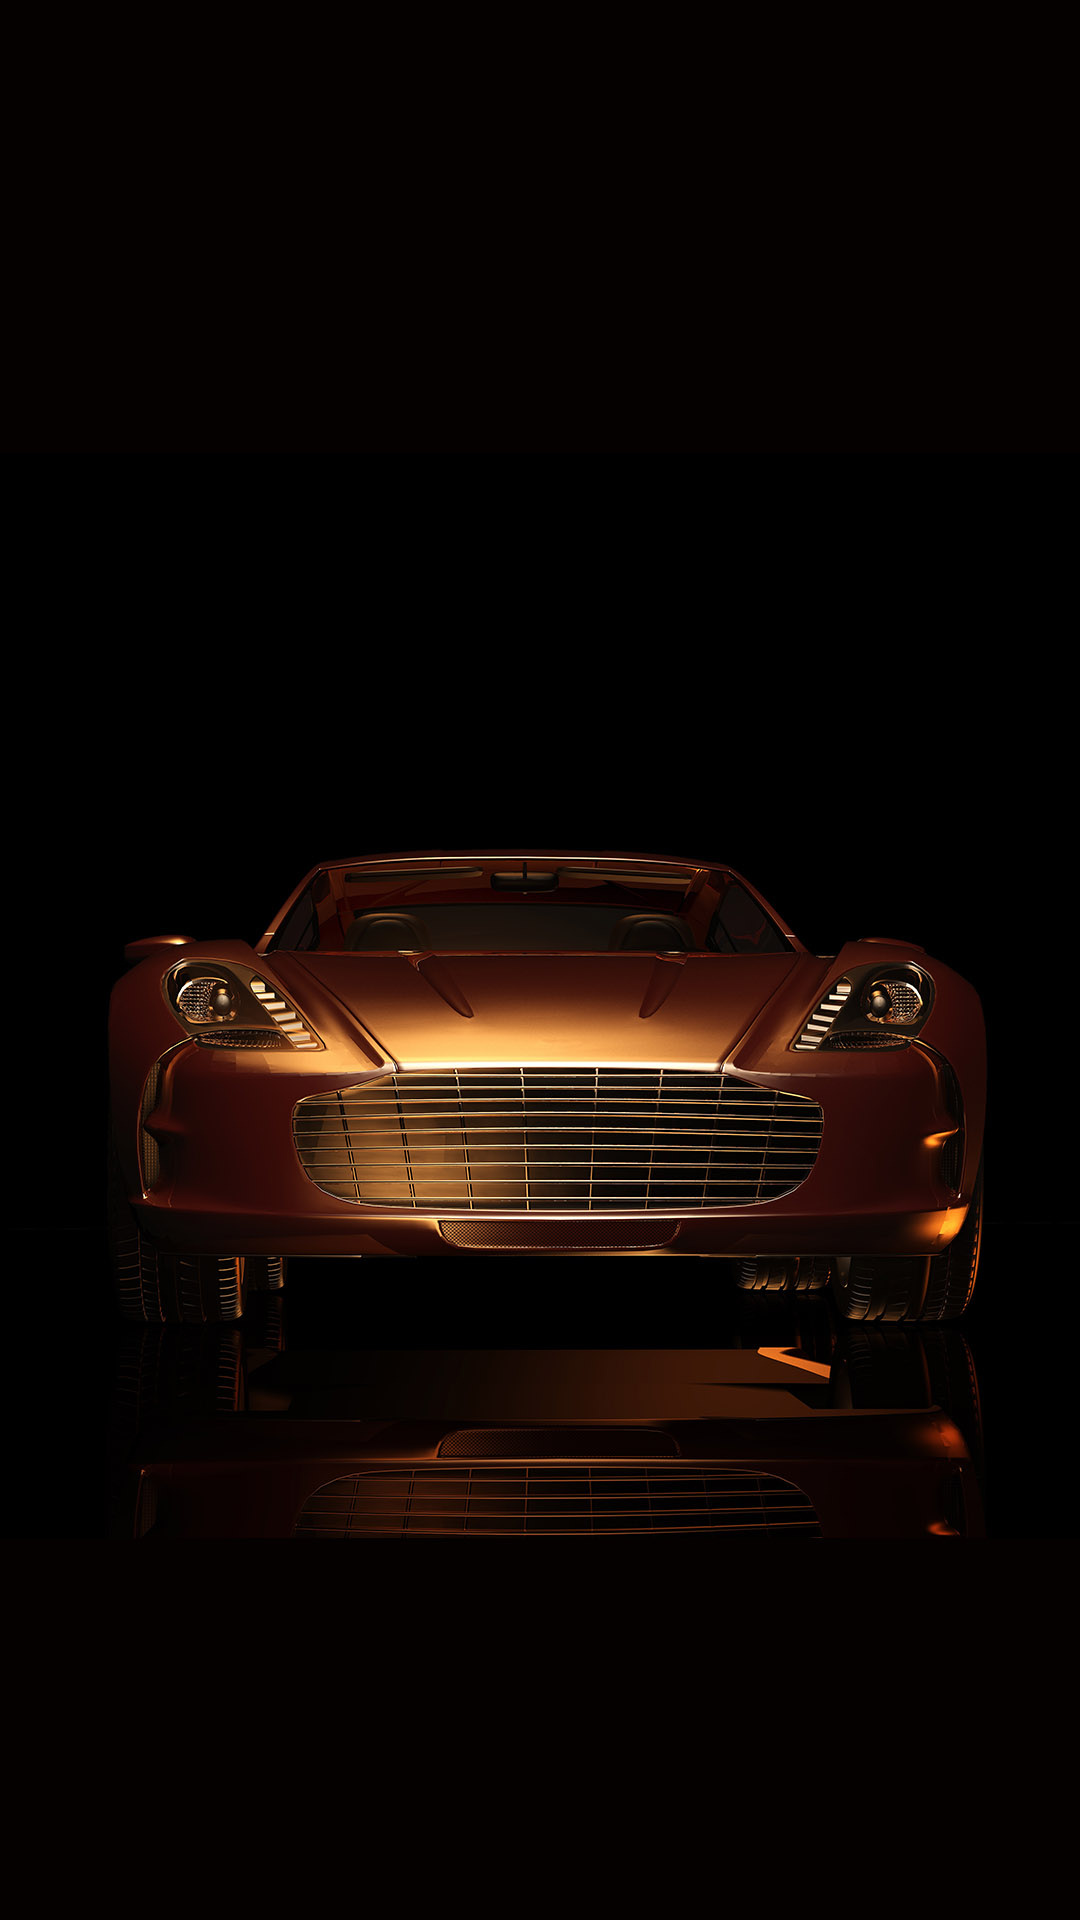 Save $52 for a limited time! Sports Car Super Cars Wallpapers Iphone 8 1080x1920 Download Hd Wallpaper Wallpapertip